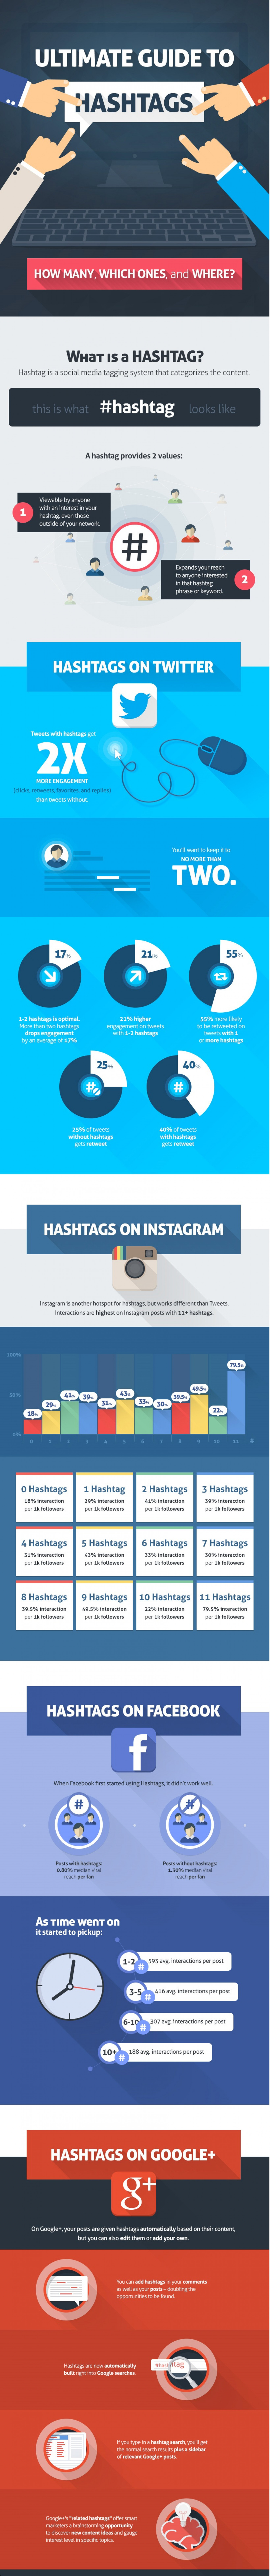 The Ultimate Guide to Hashtag Infographic